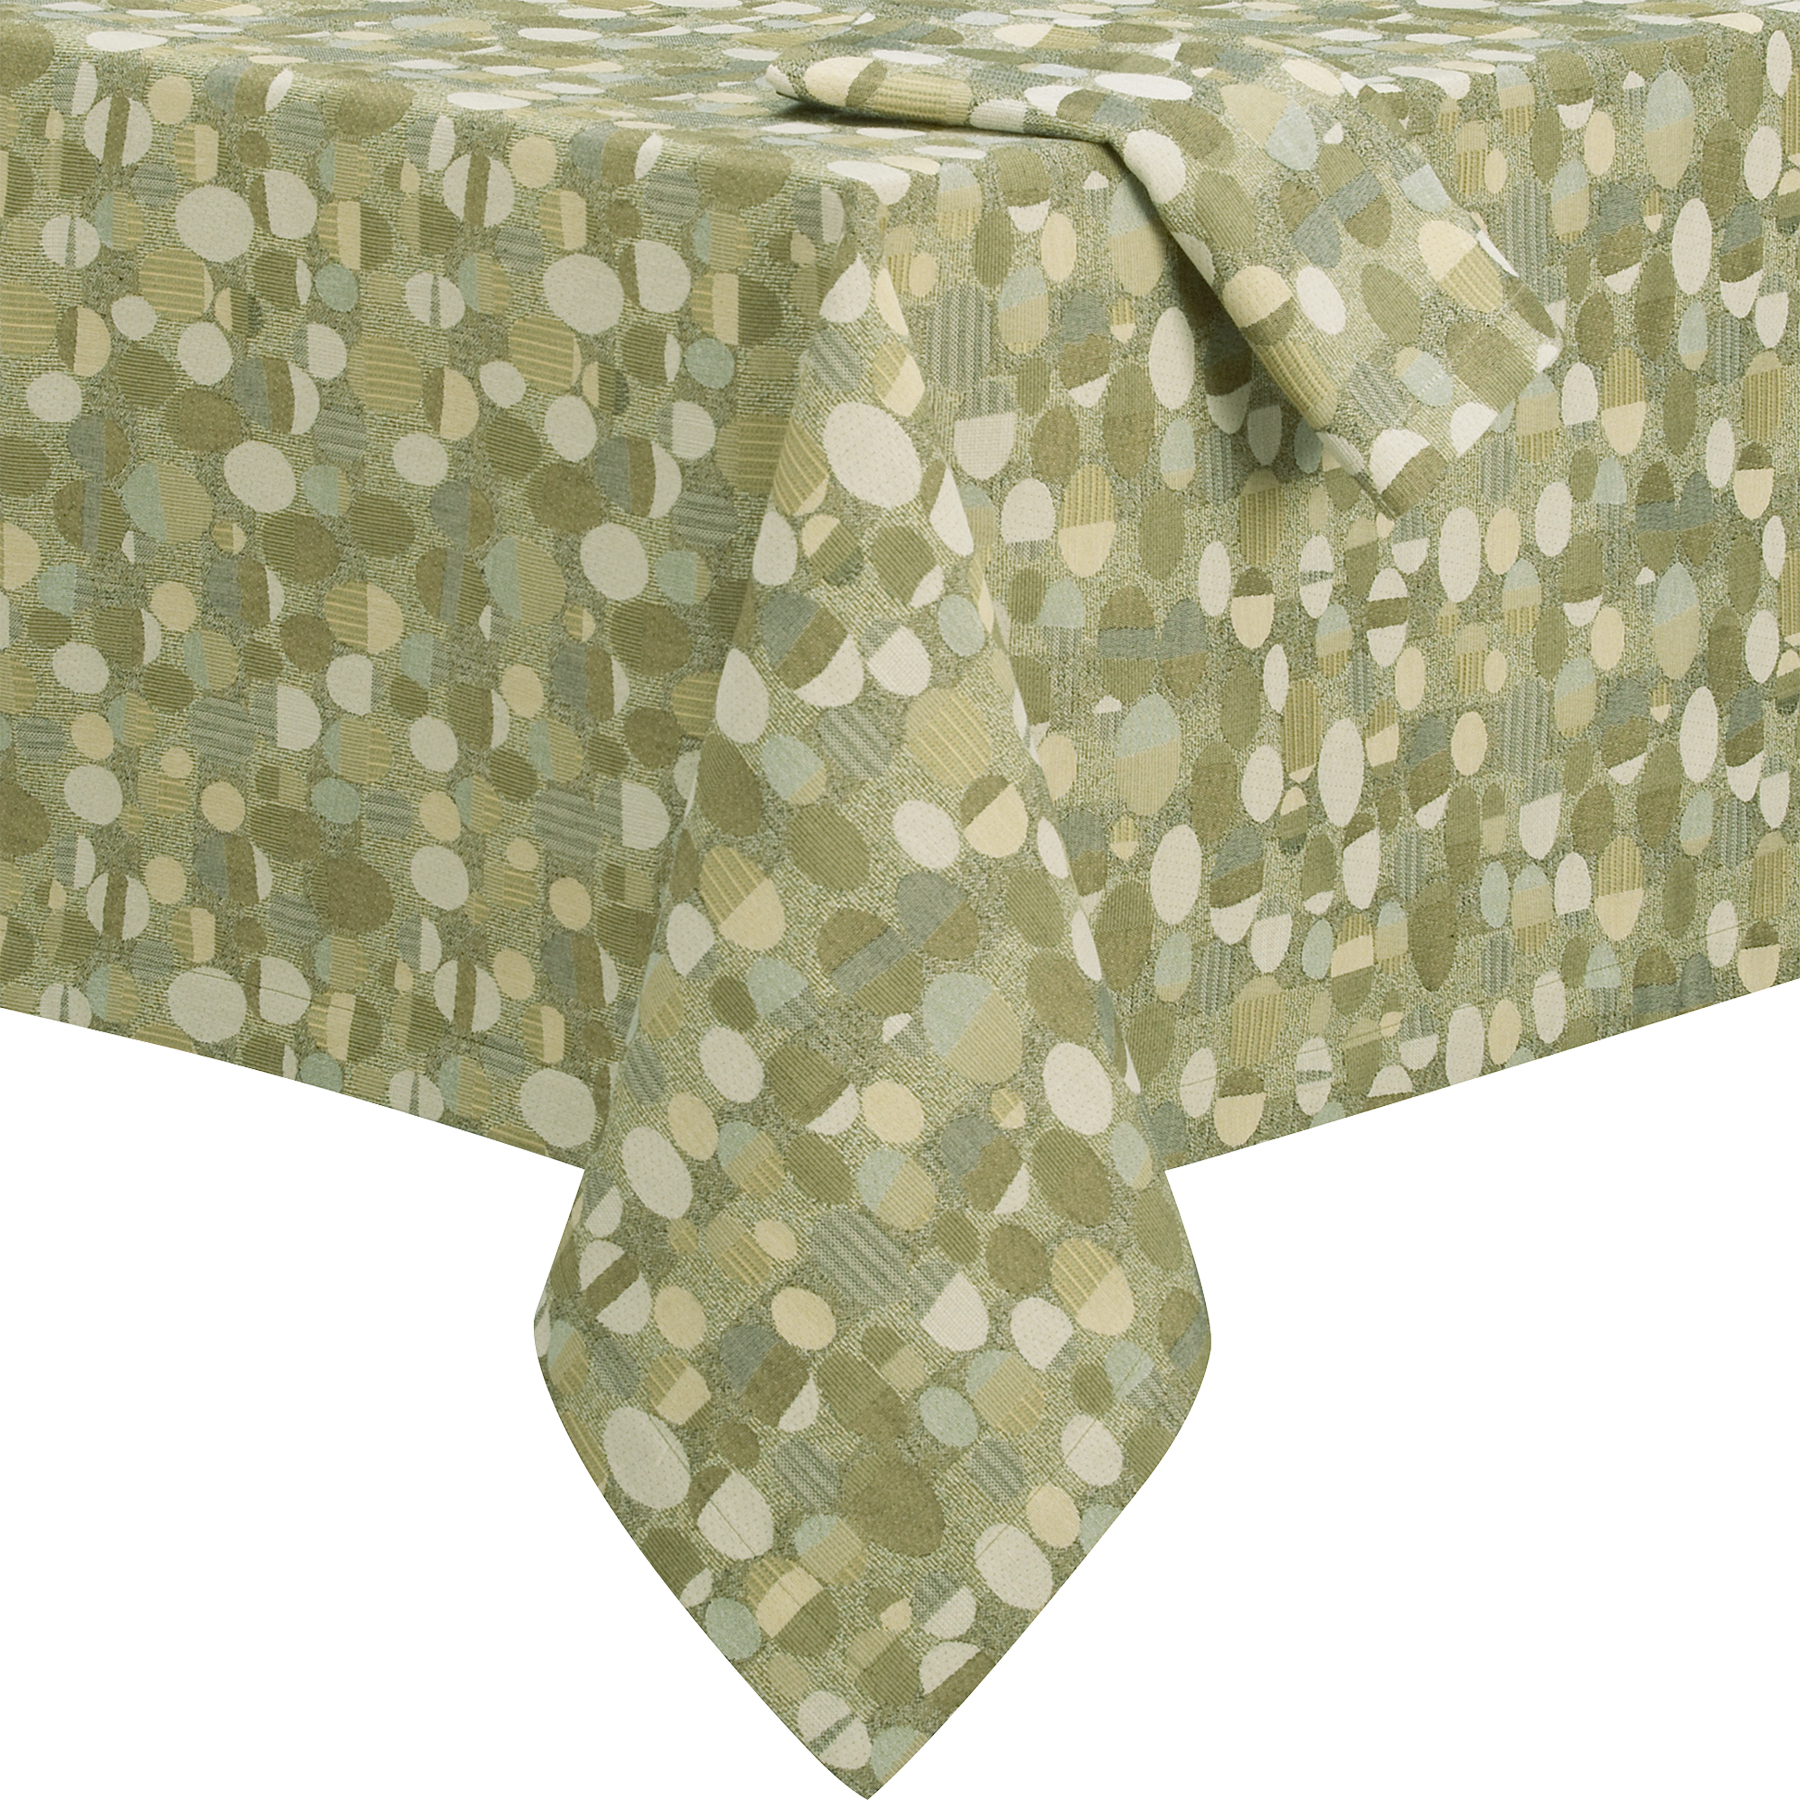 Stones Jacquard Tablecloth for Crate & Barrel